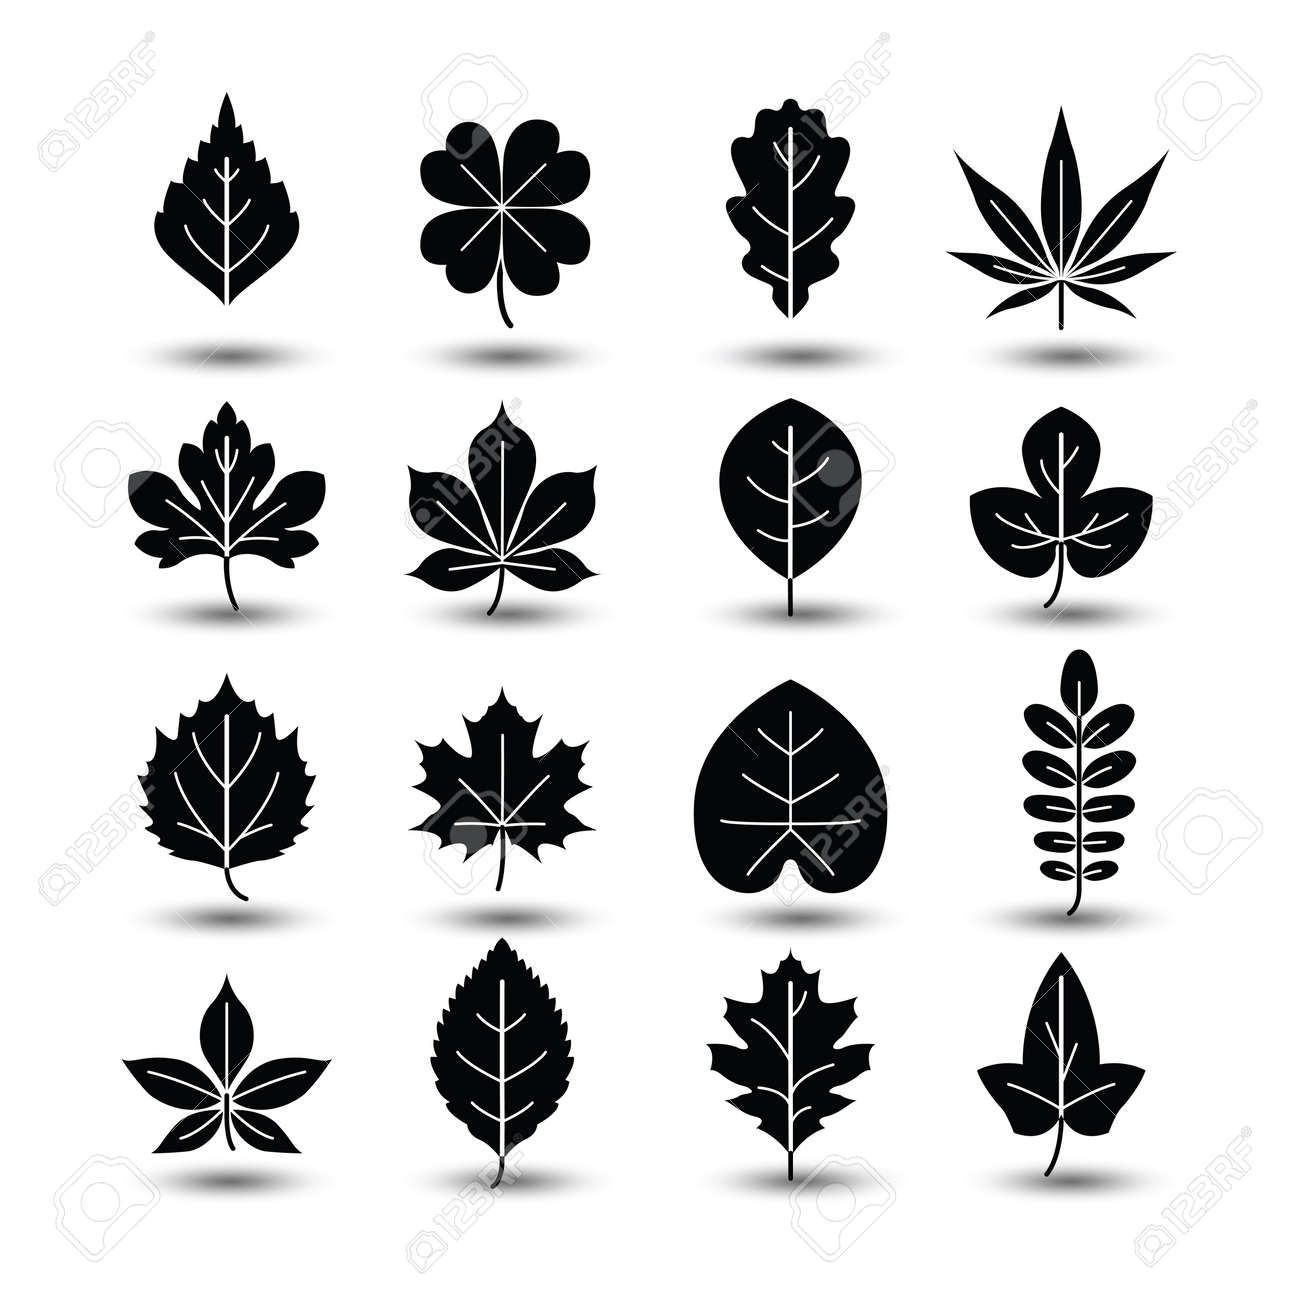 Outlined tree leaf line icons,vector illustration Stock Vector - 44668584